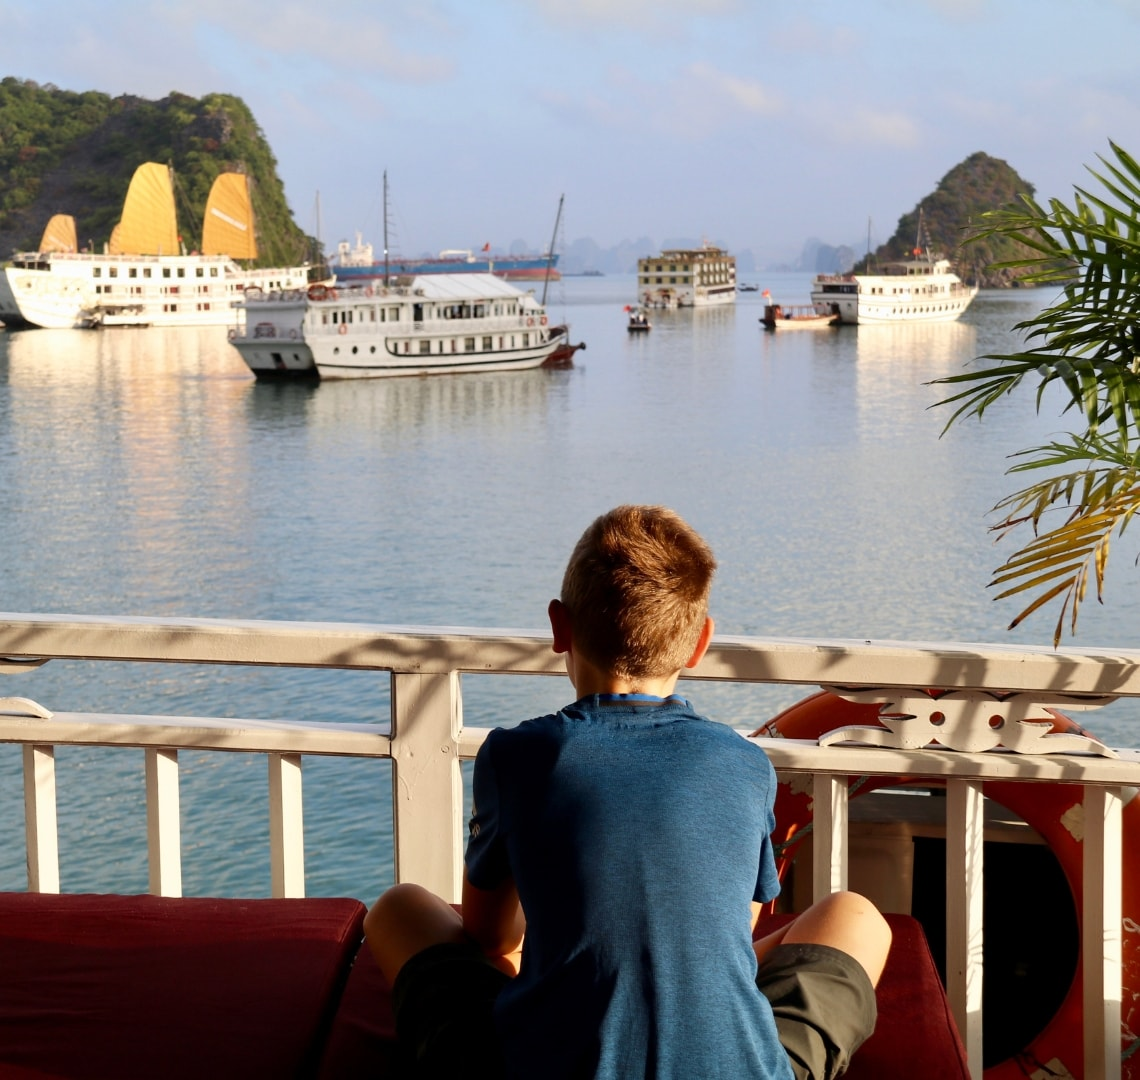 Best family holiday destinations - Go Live Young's son looking out over the cruise ferries and dramatic landscape of Ha Long Bay